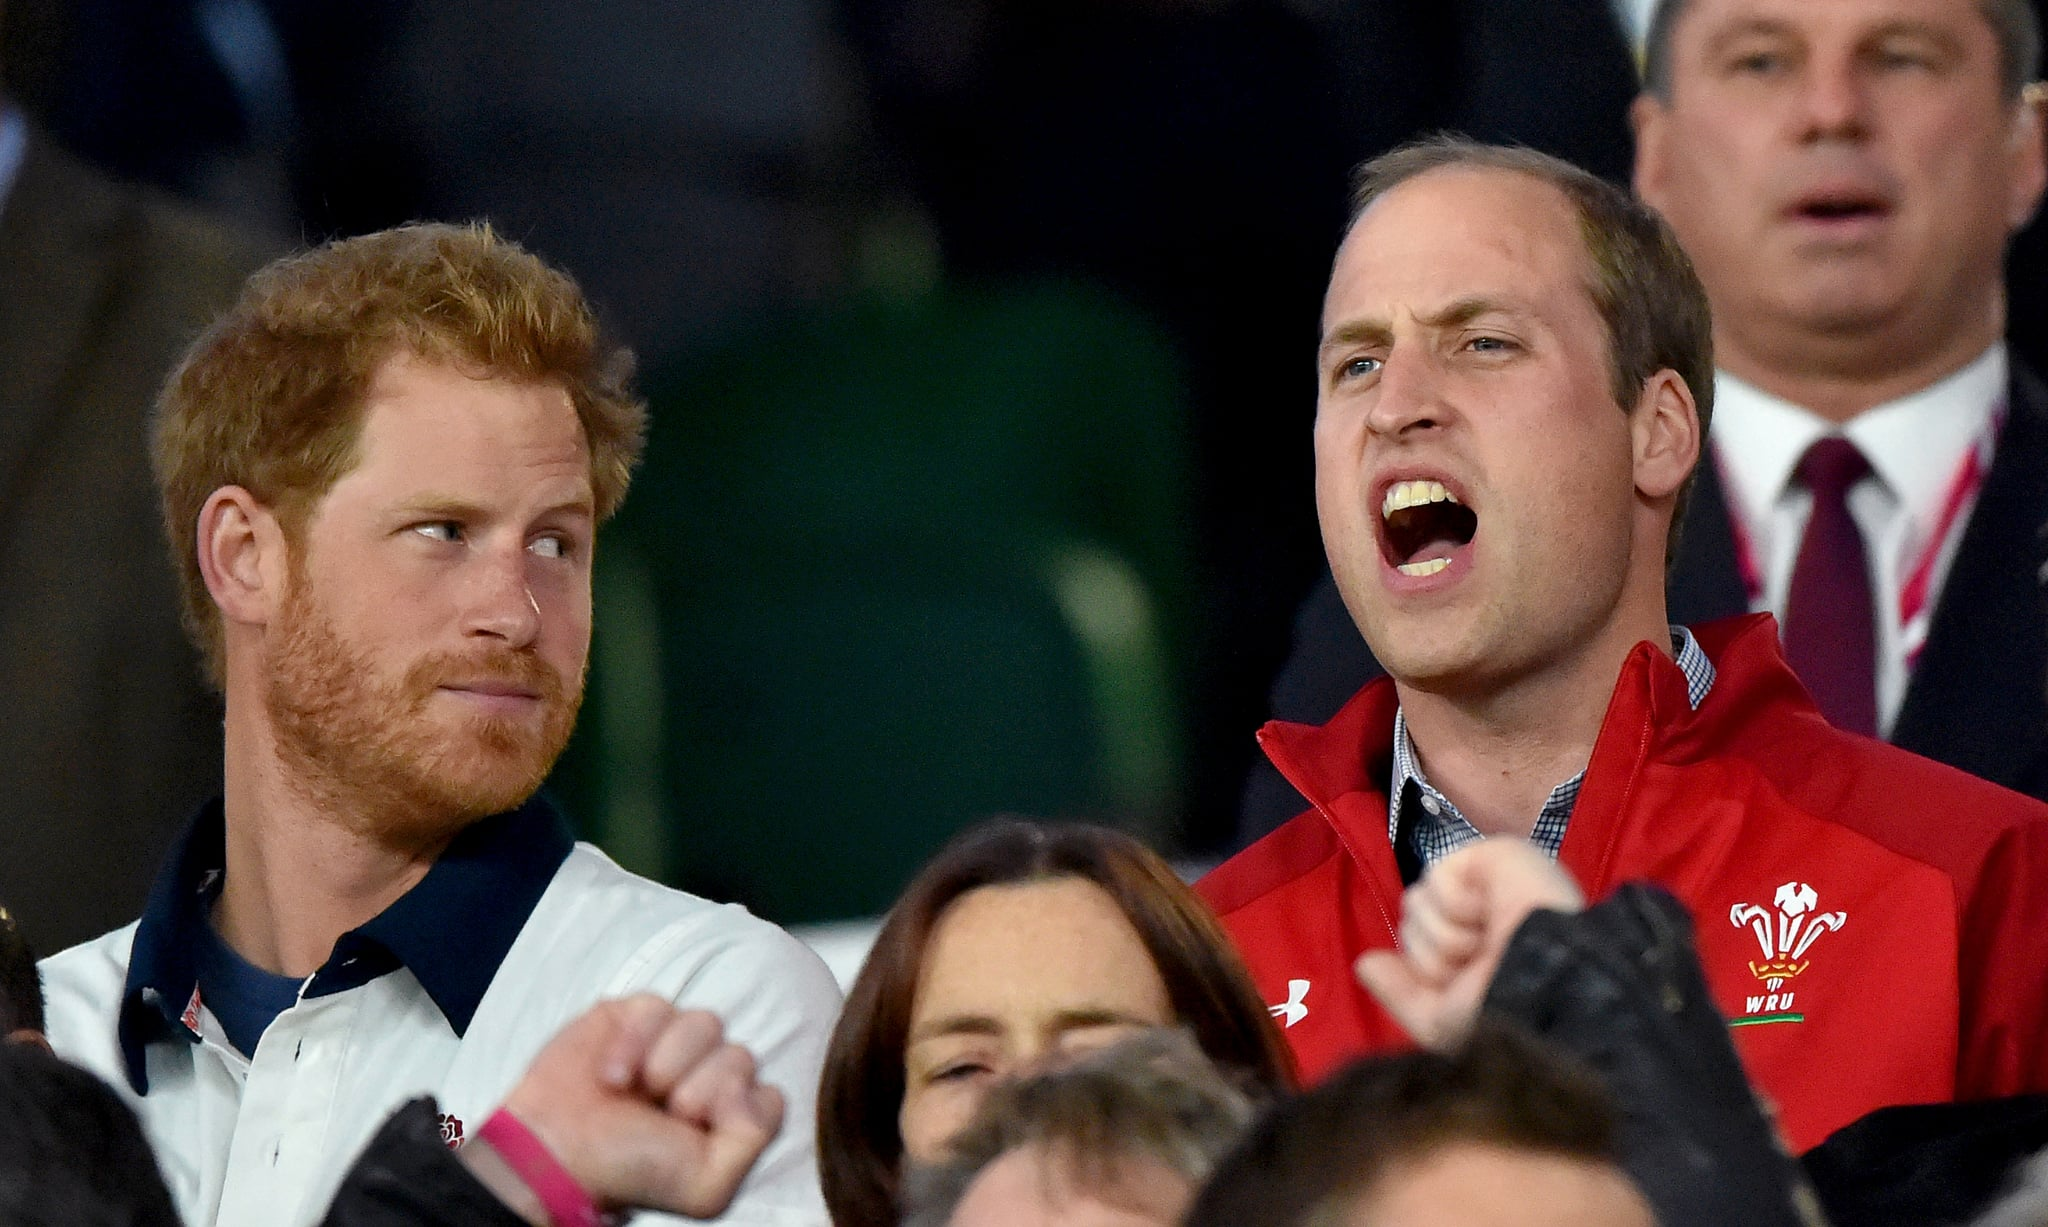 Harry Gave William A Funny Look While Taking In The Rugby World Cup Prince William And Prince Harry S Cutest Moments Together Through The Years Popsugar Celebrity Photo 42